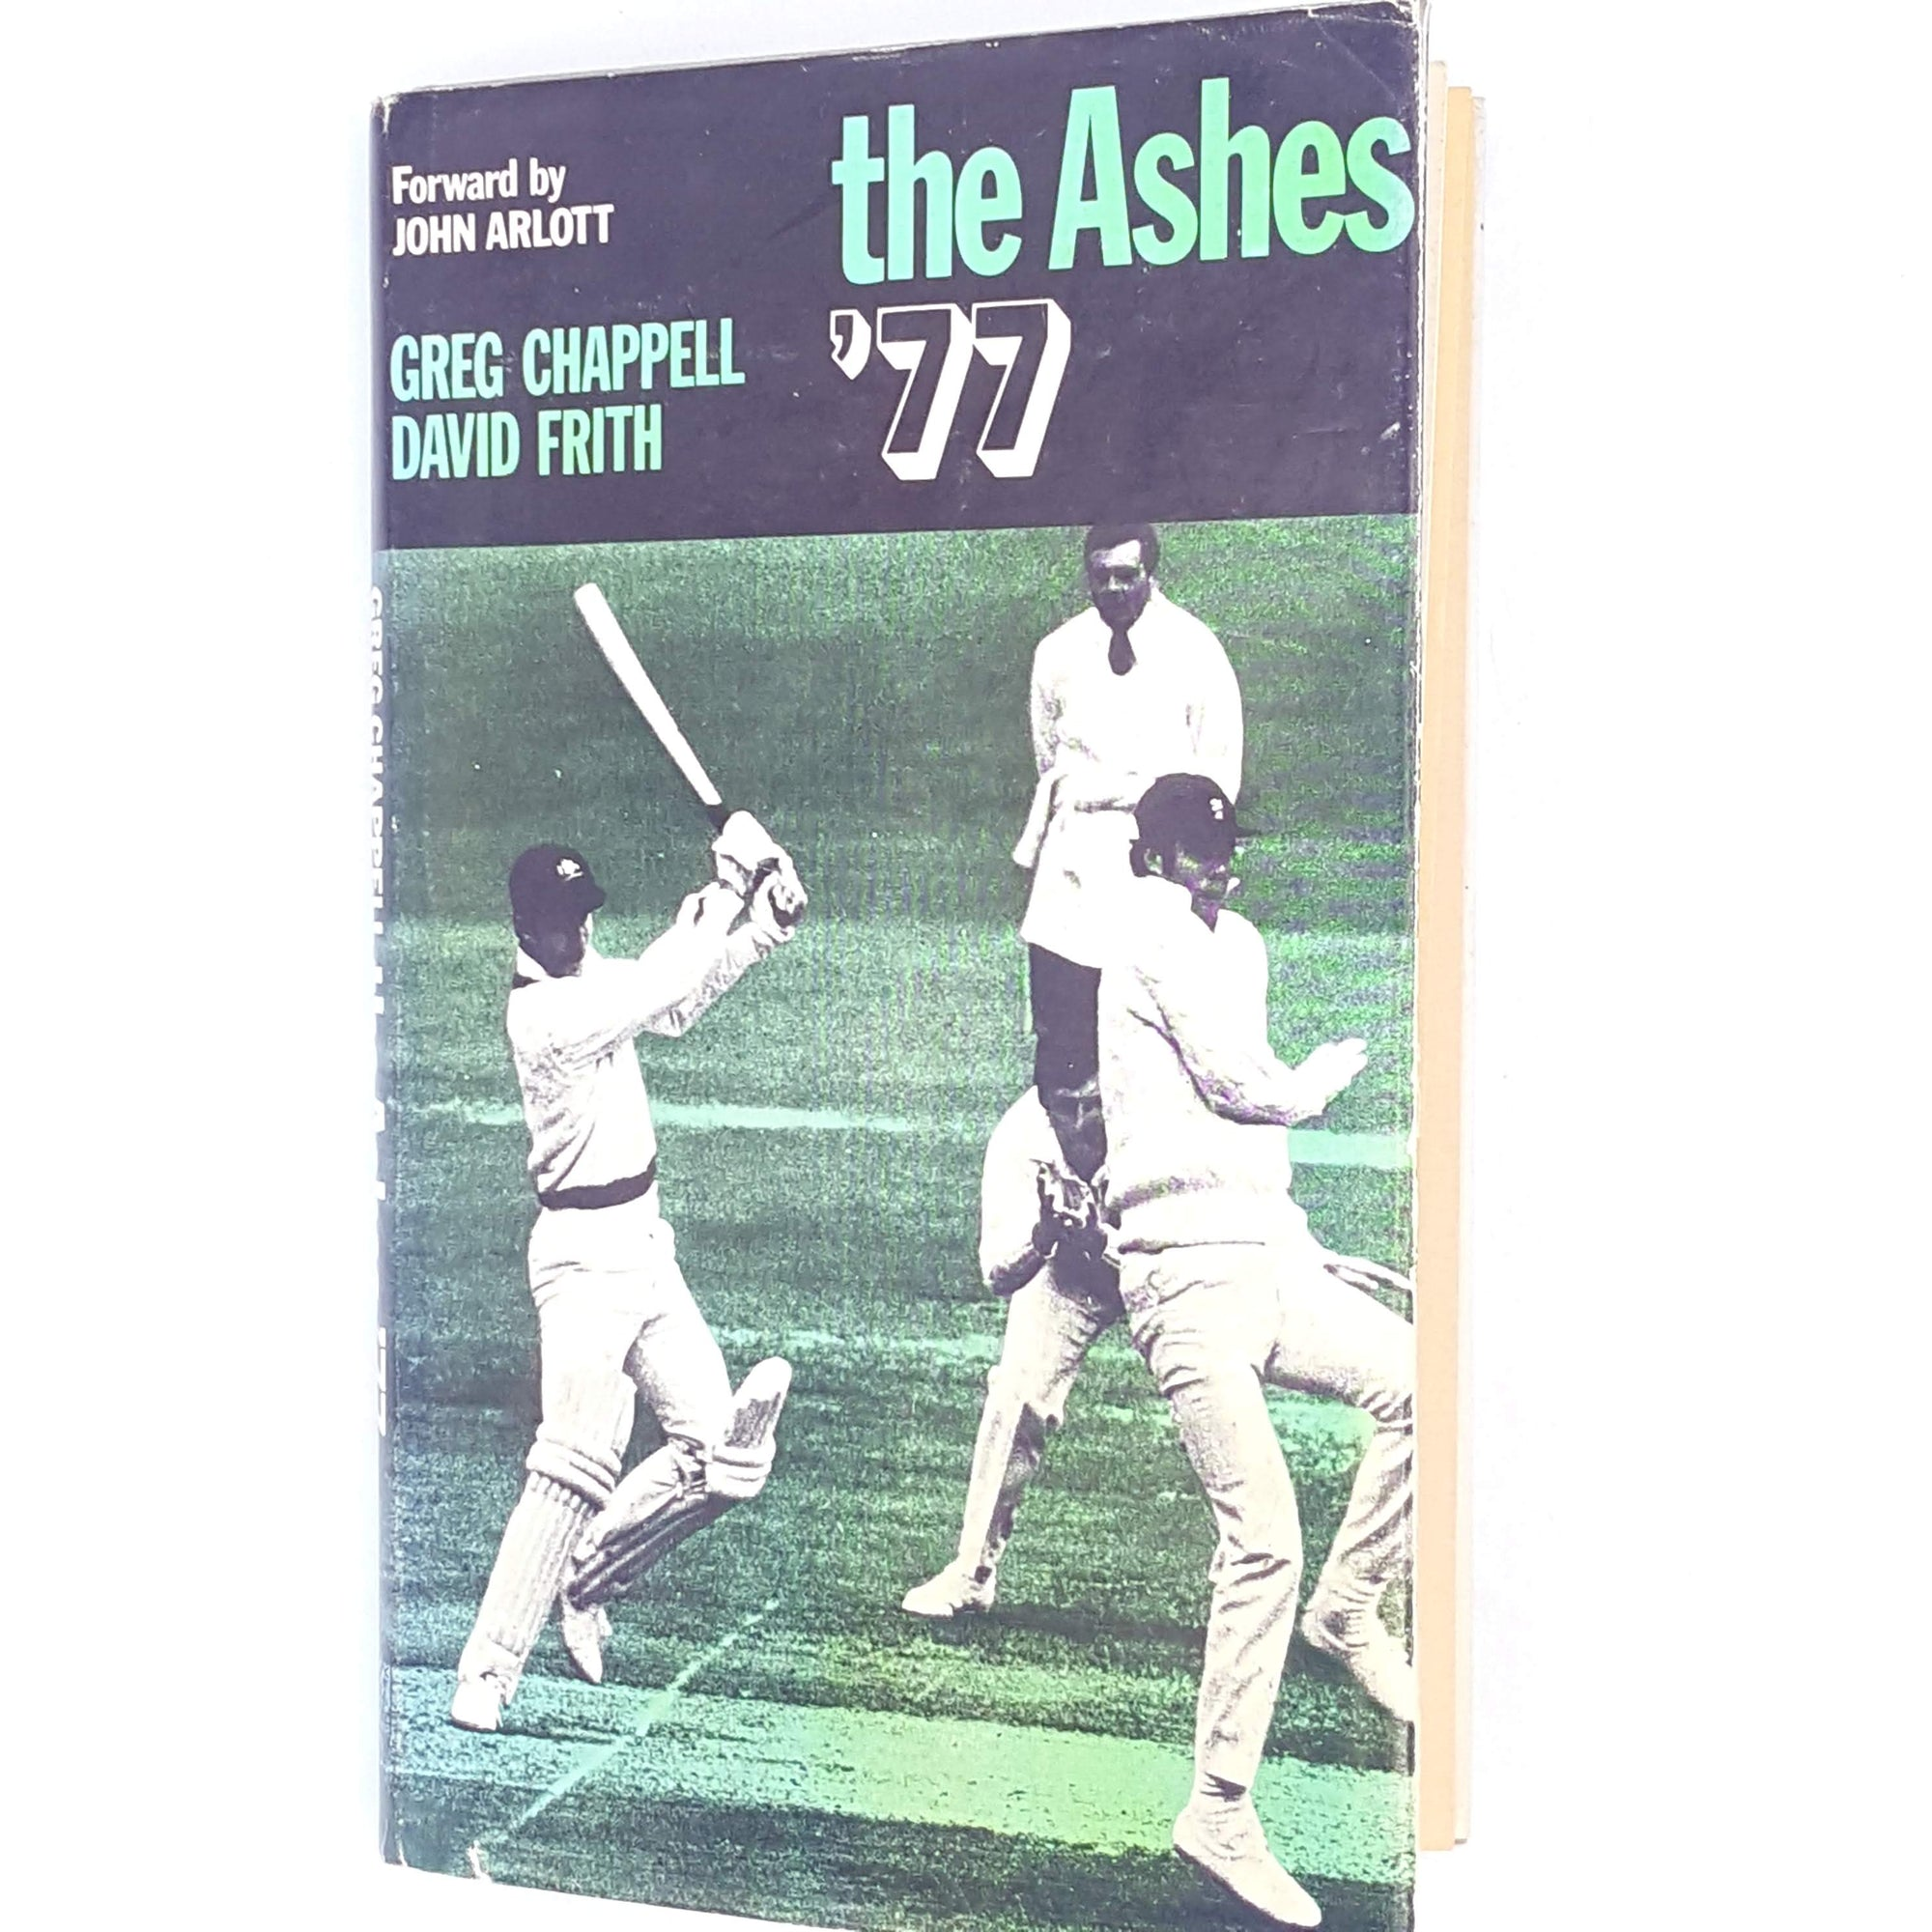 The Ashes '77 by Greg Chappell and David Frith 1978